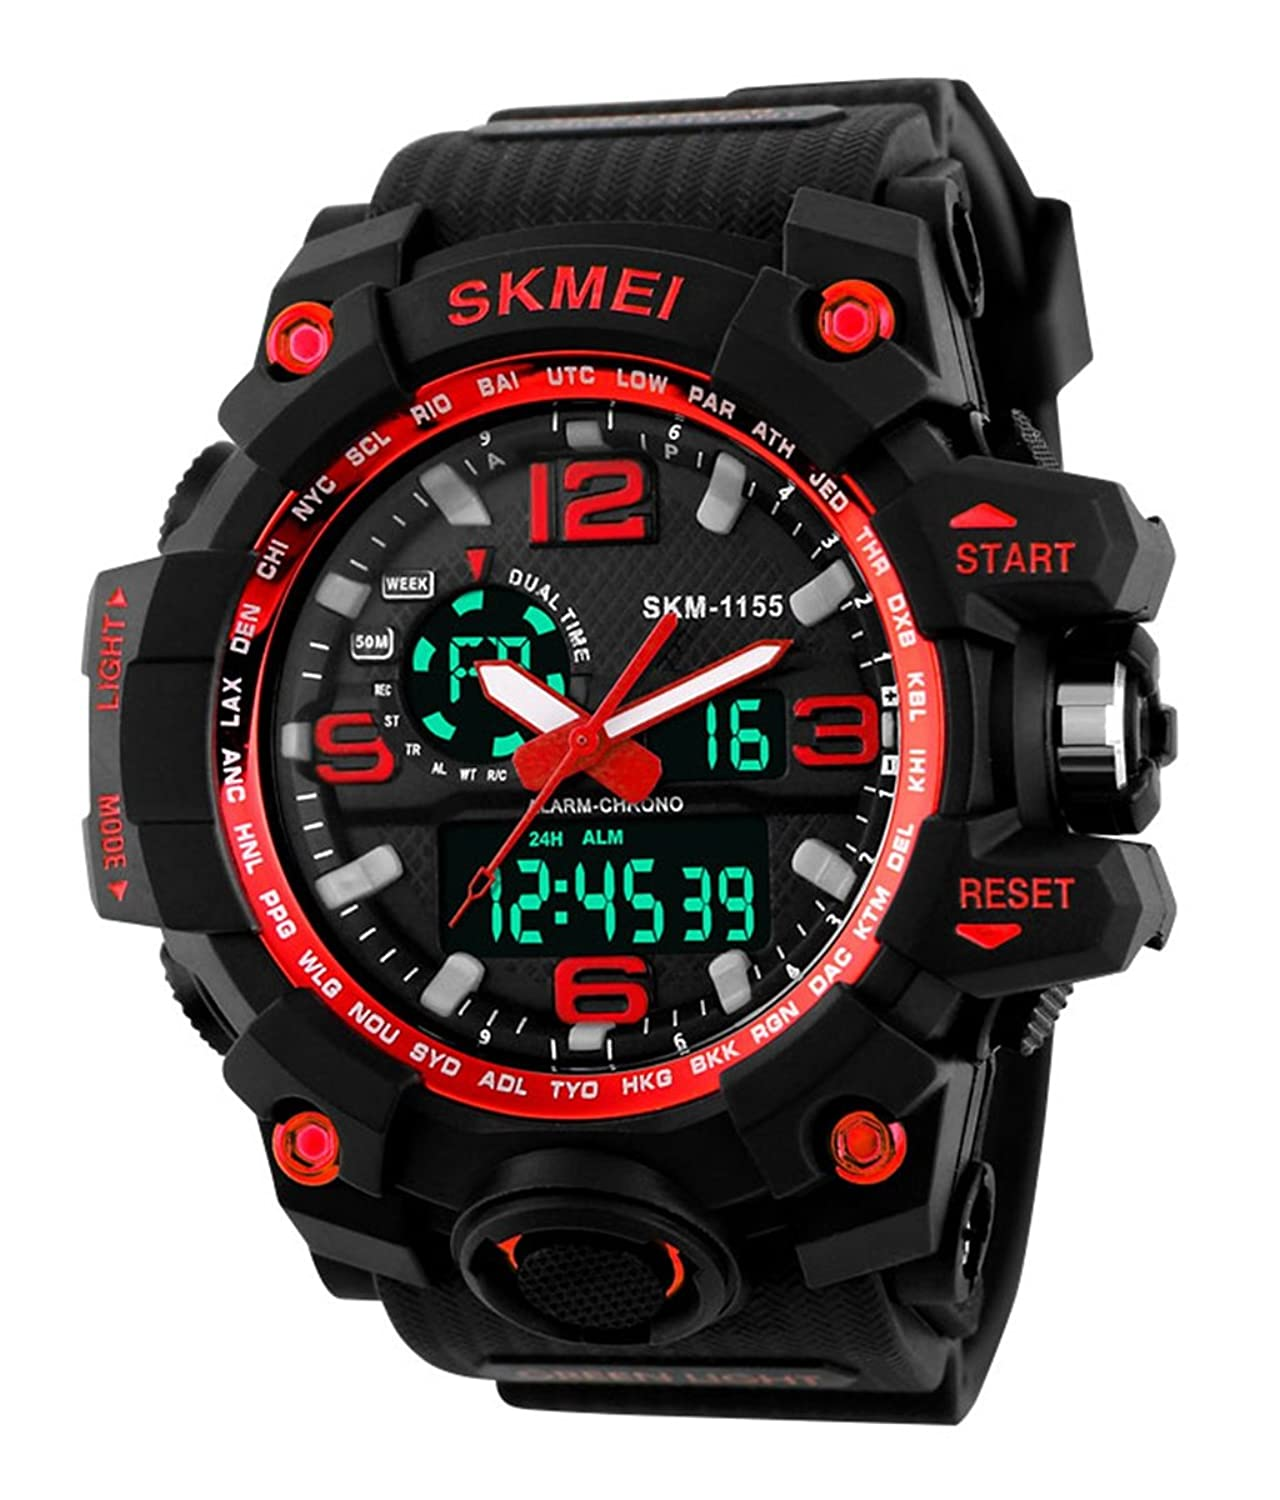 watches limited watch analog men gold s skye quantities very waterproof sports products digital military rose reker mens quartz led shock casual style army fashion swimming